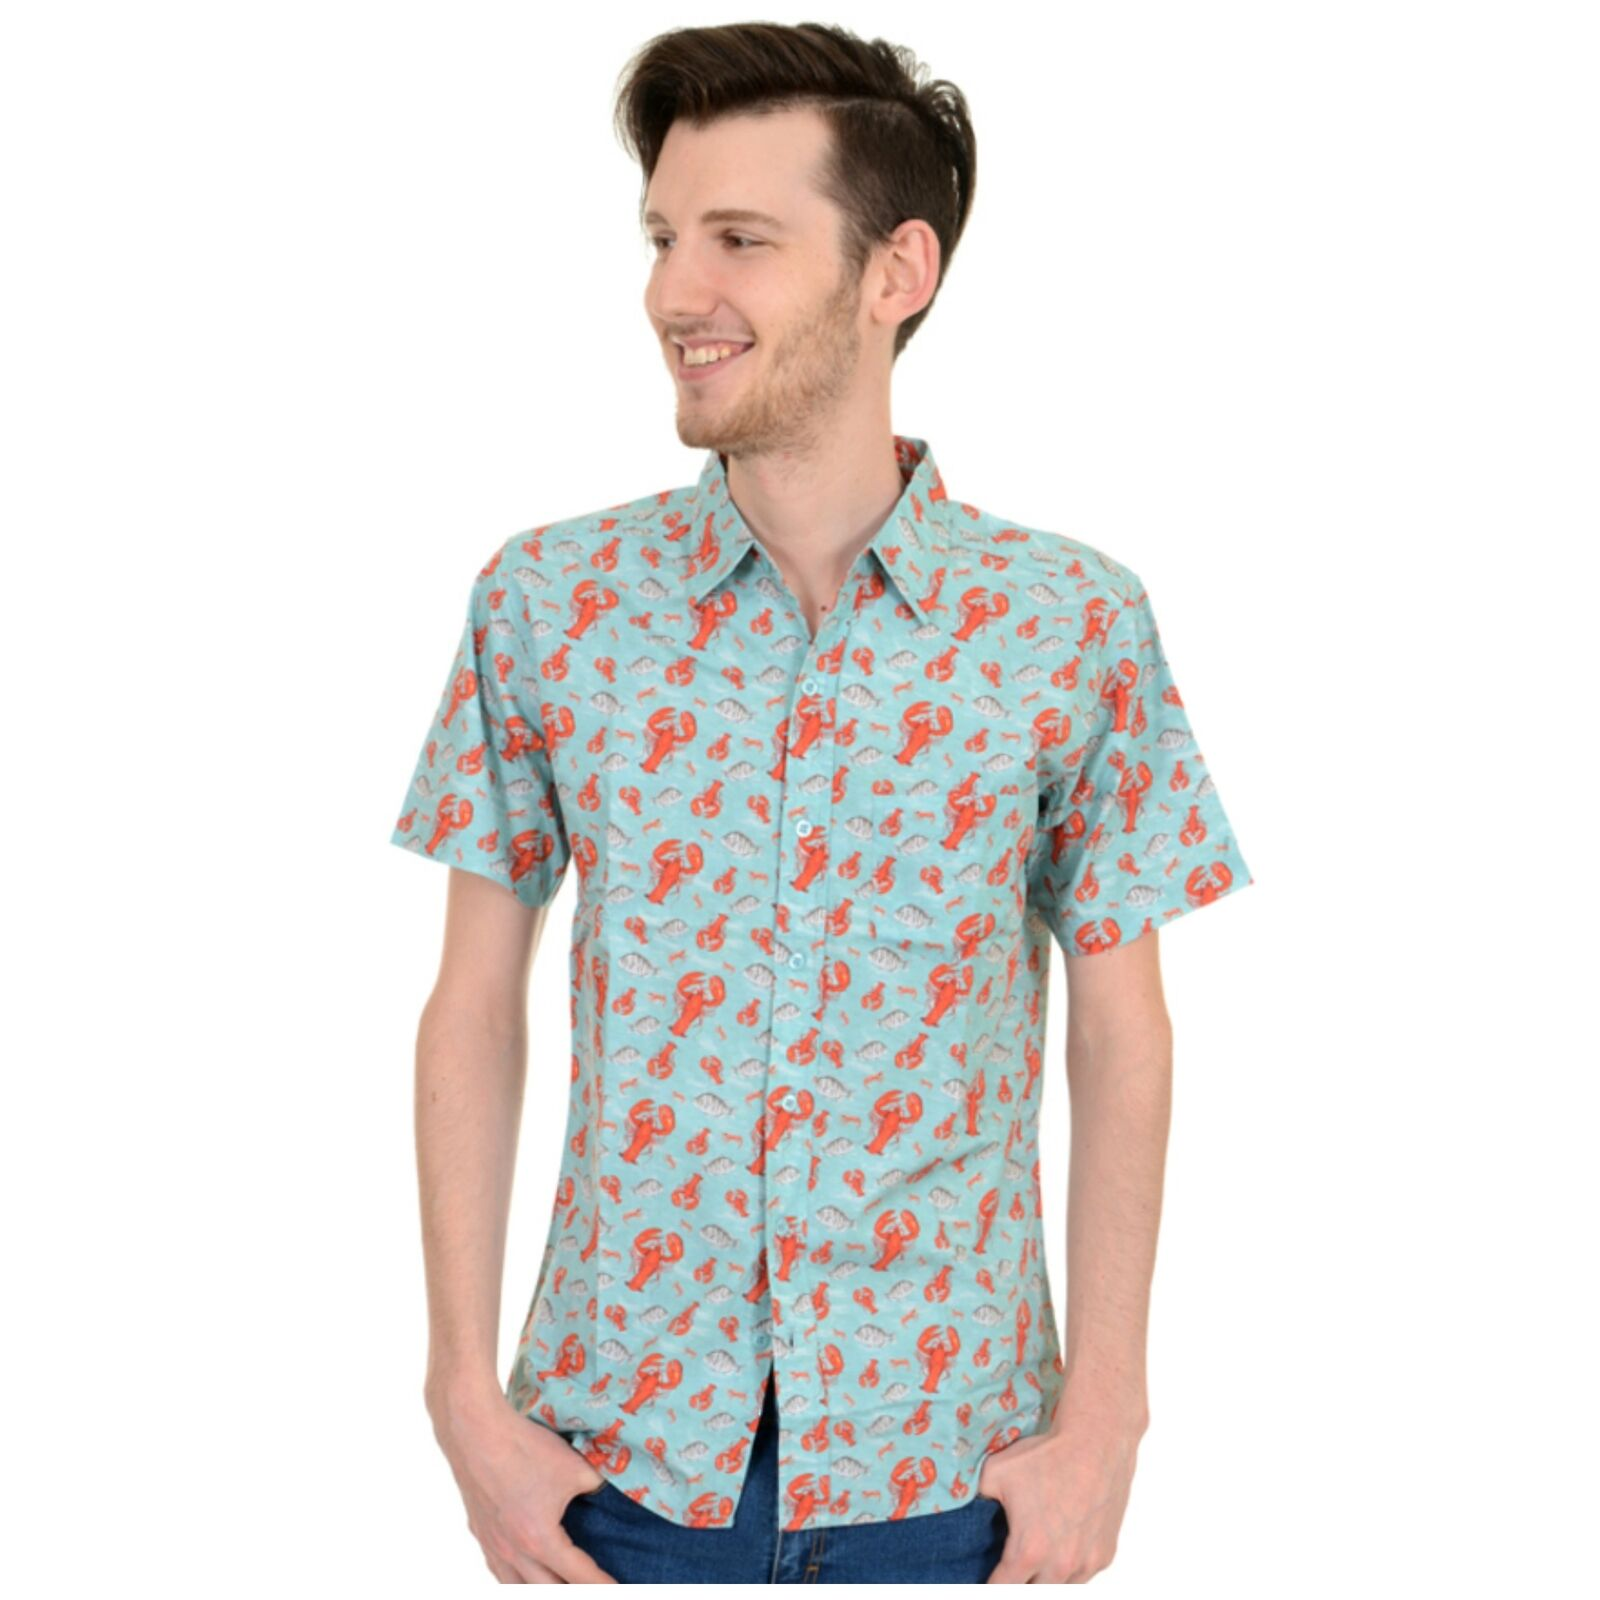 Lobster Print Shirt by Run and Fly